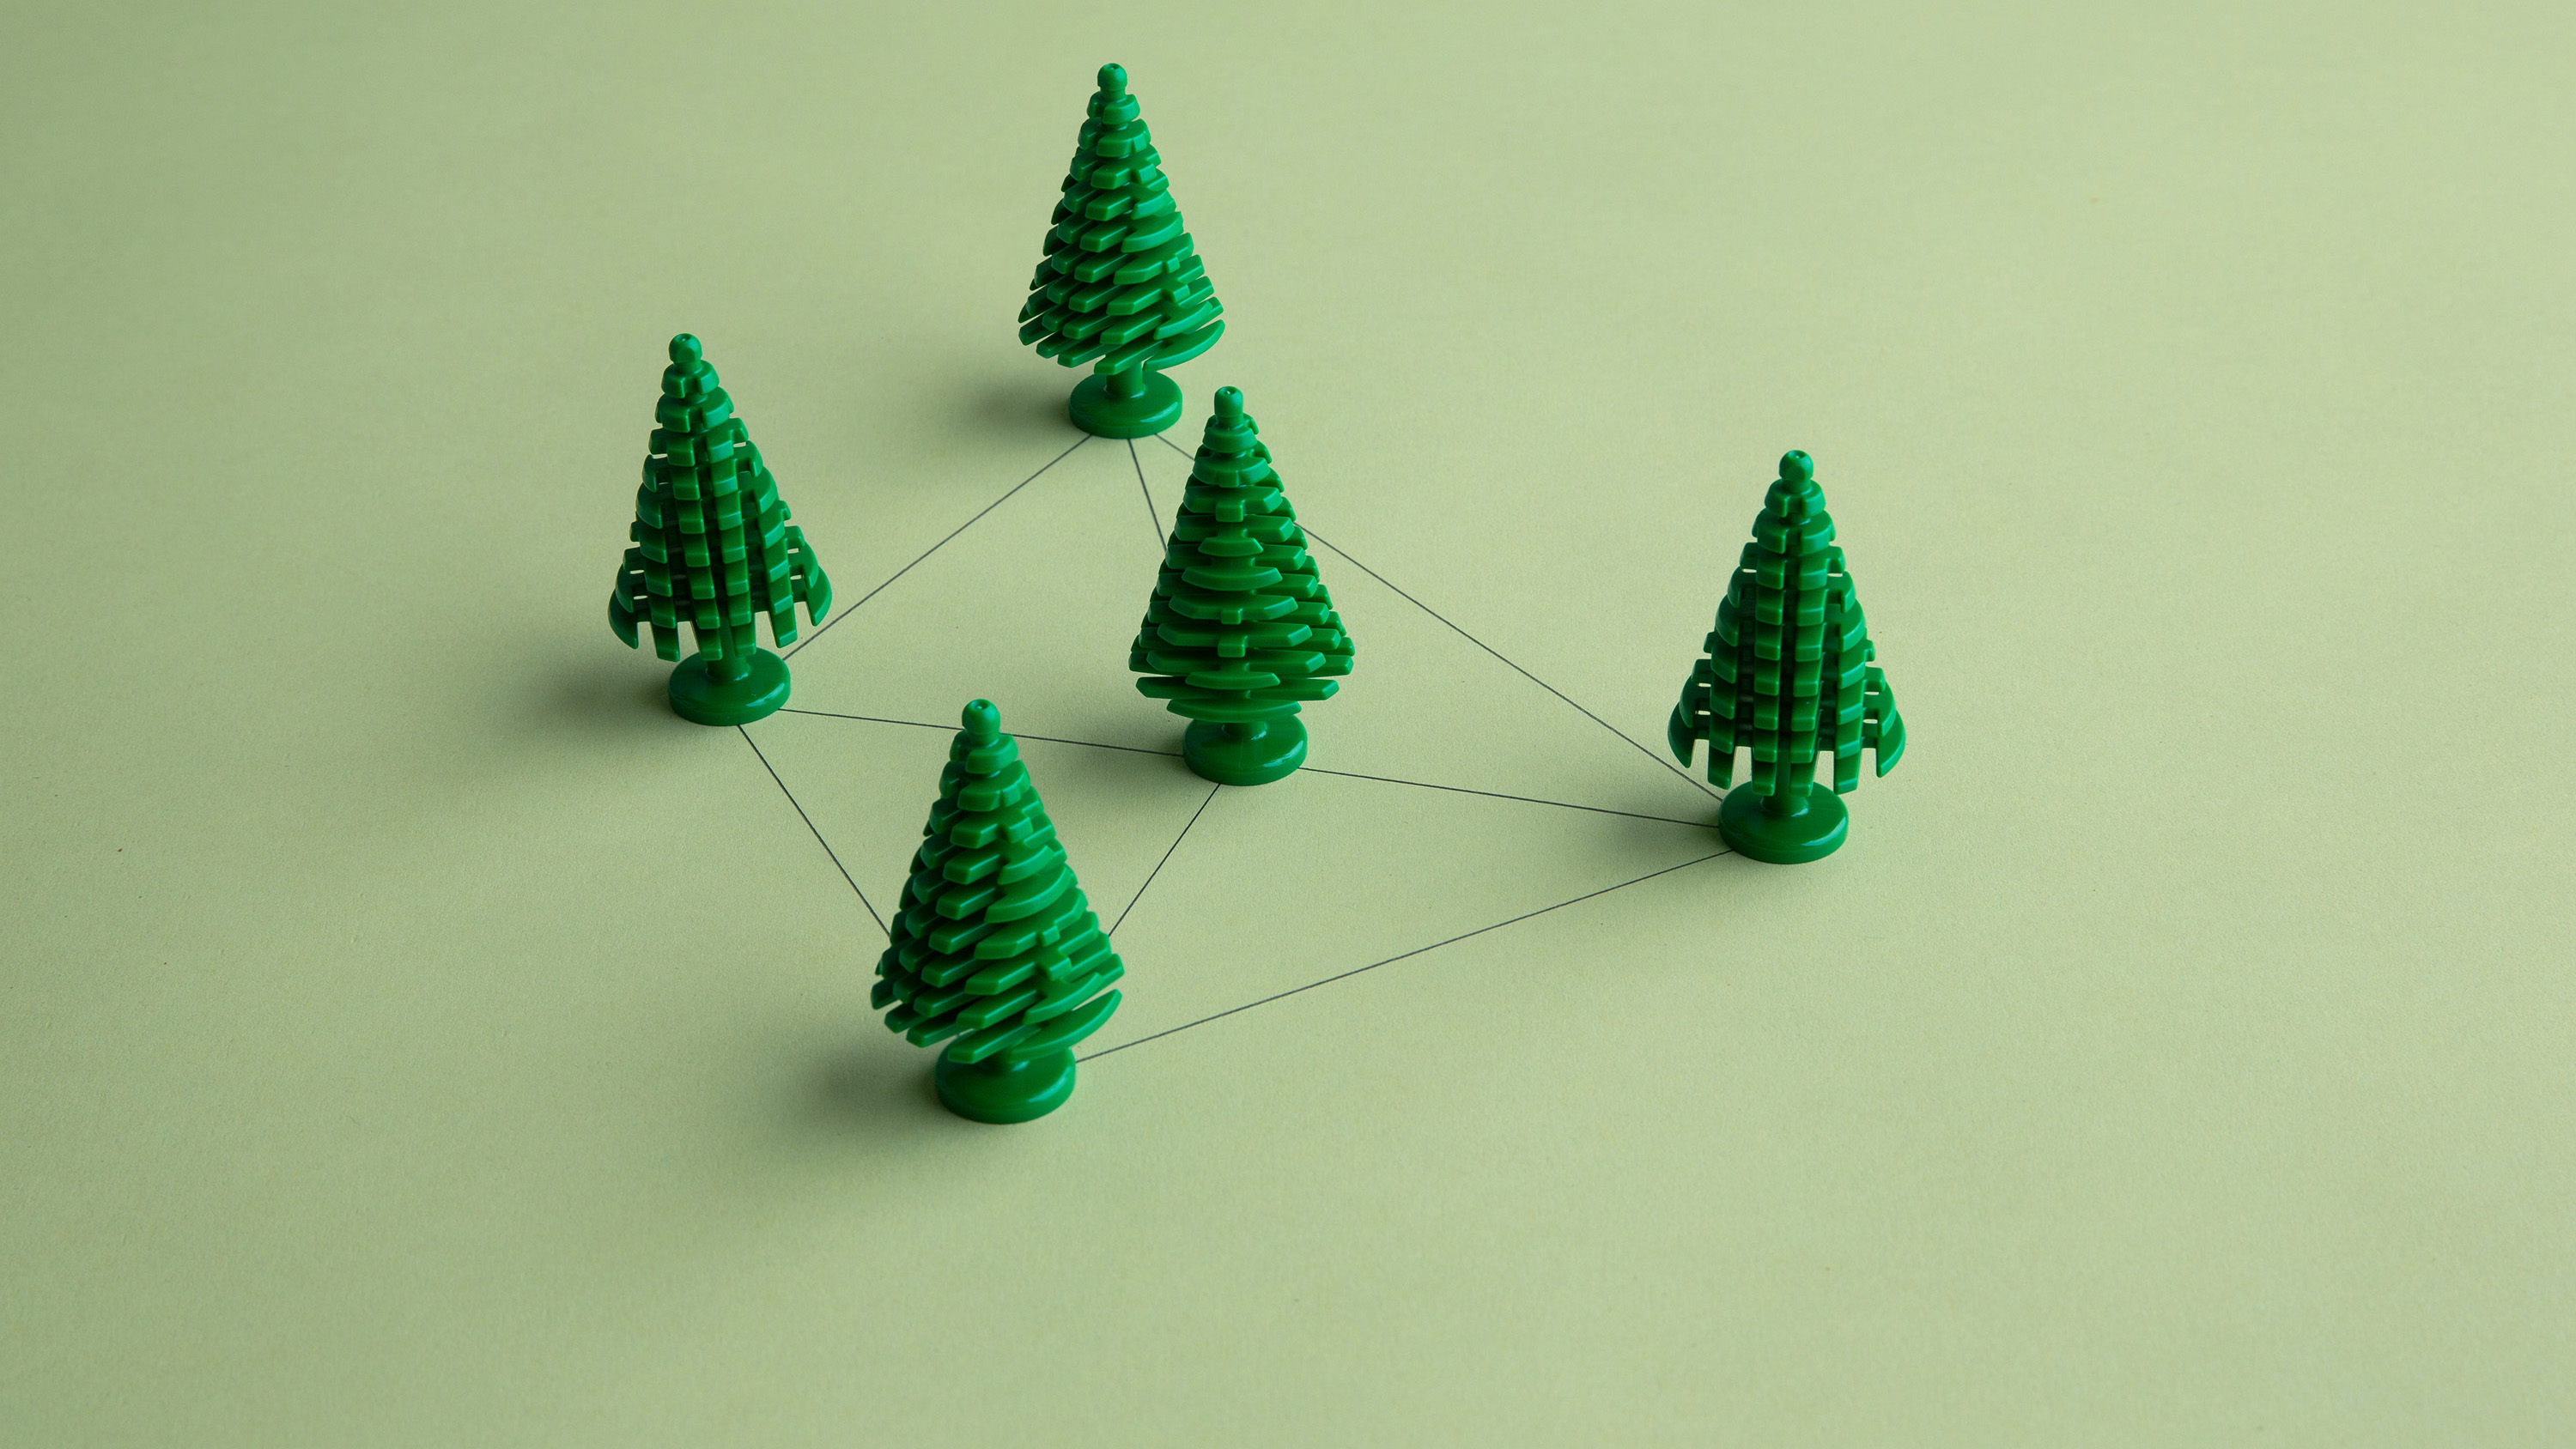 The Steiner tree problem:  Connect a set of points with line segments of minimum total length.